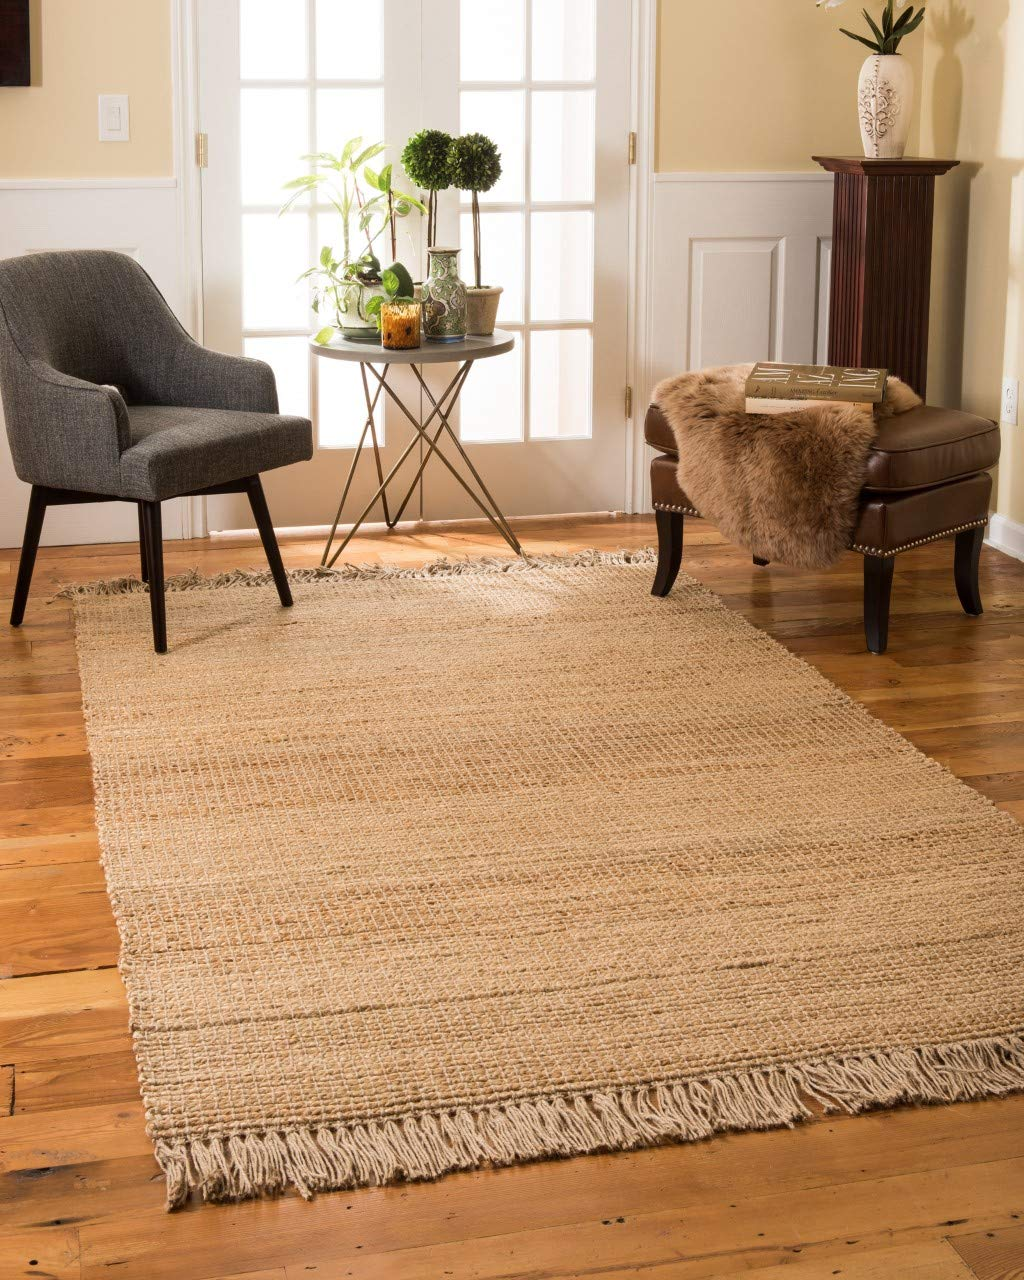 Natural Area Rugs 100 Natural Fiber Handmade Sicily Jute Rectangular Rug 6 X 9 Beige